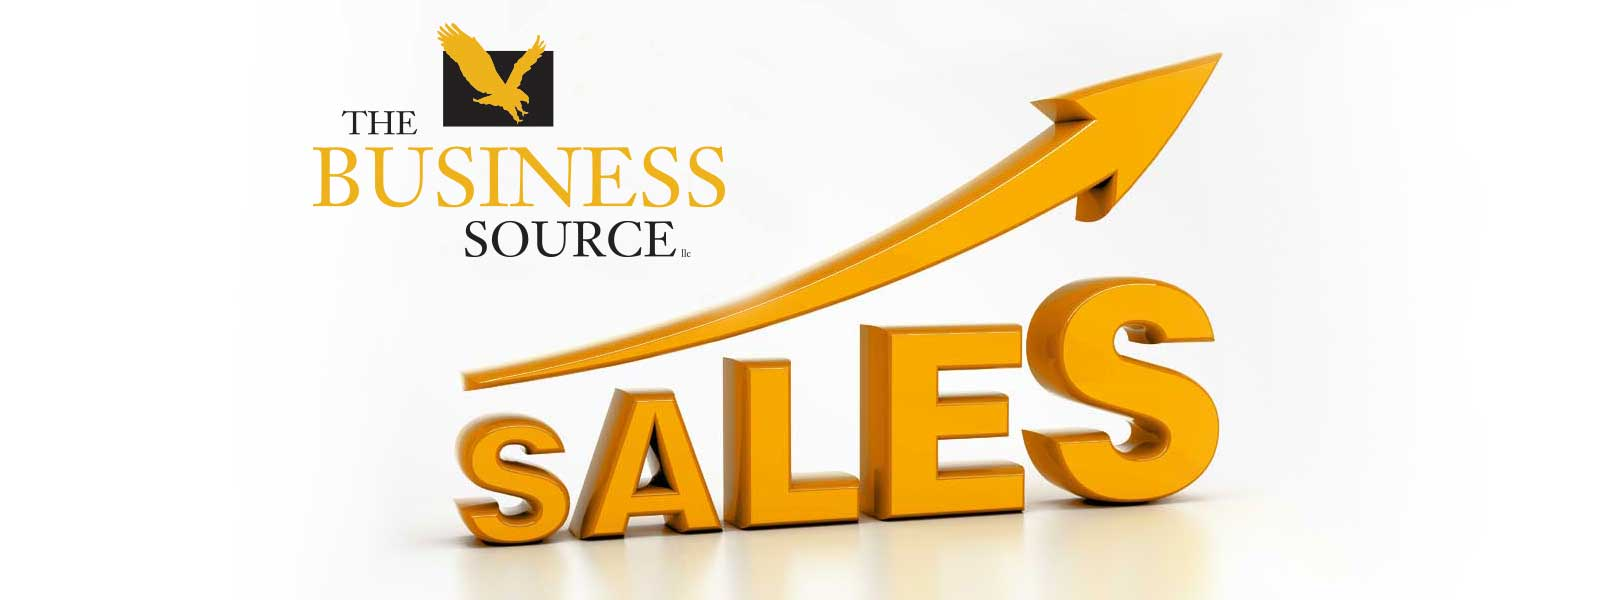 TheBusinessSource.com FULL RIP 2012 April